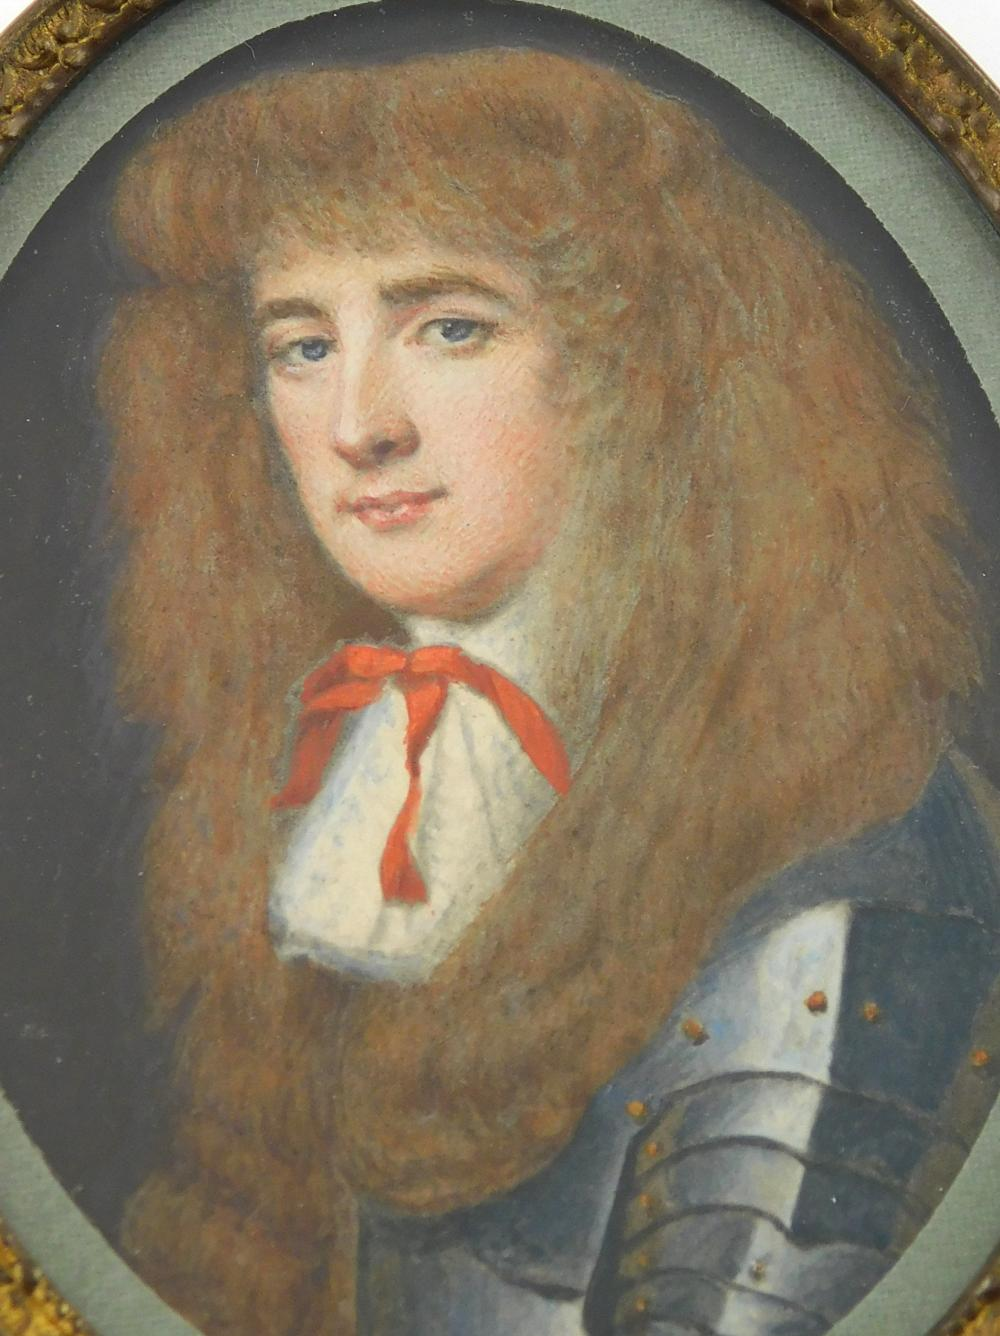 MINIATURE: Man in armor, possibly Lord Romney, oval support, man with brown bangs and long hair, suit of armor as well as red neckti...